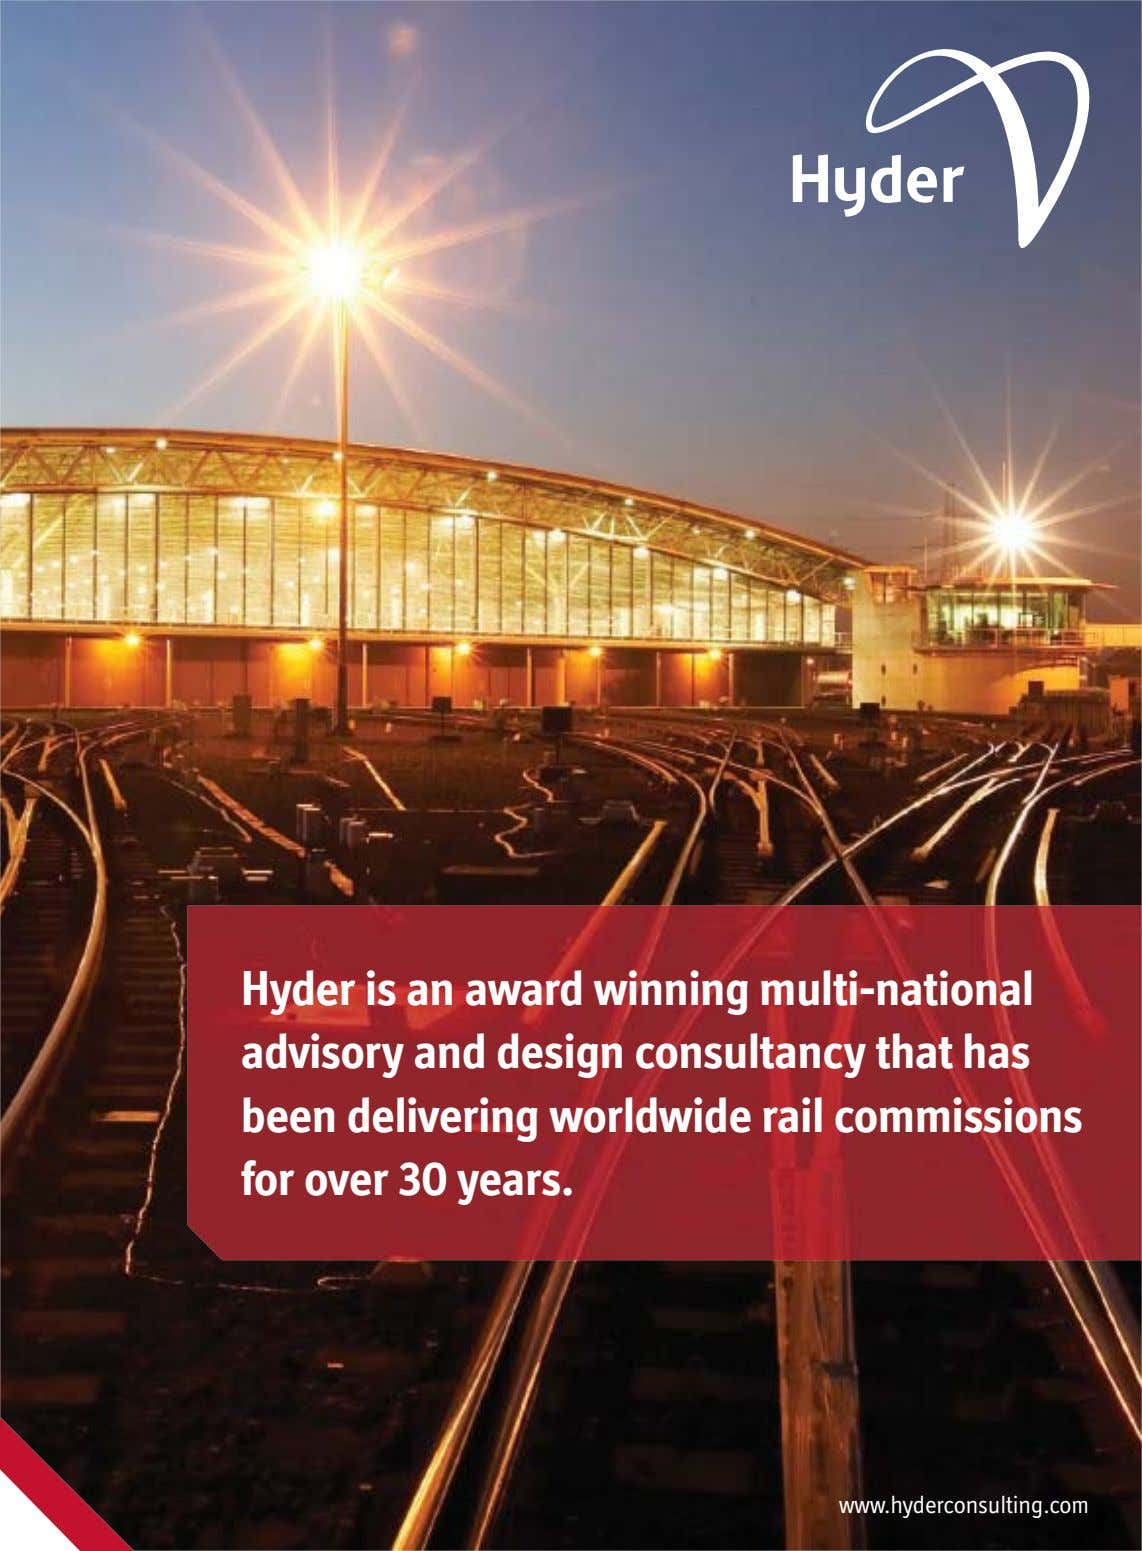 Hyder is an award winning multi-national advisory and design consultancy that has been delivering worldwide